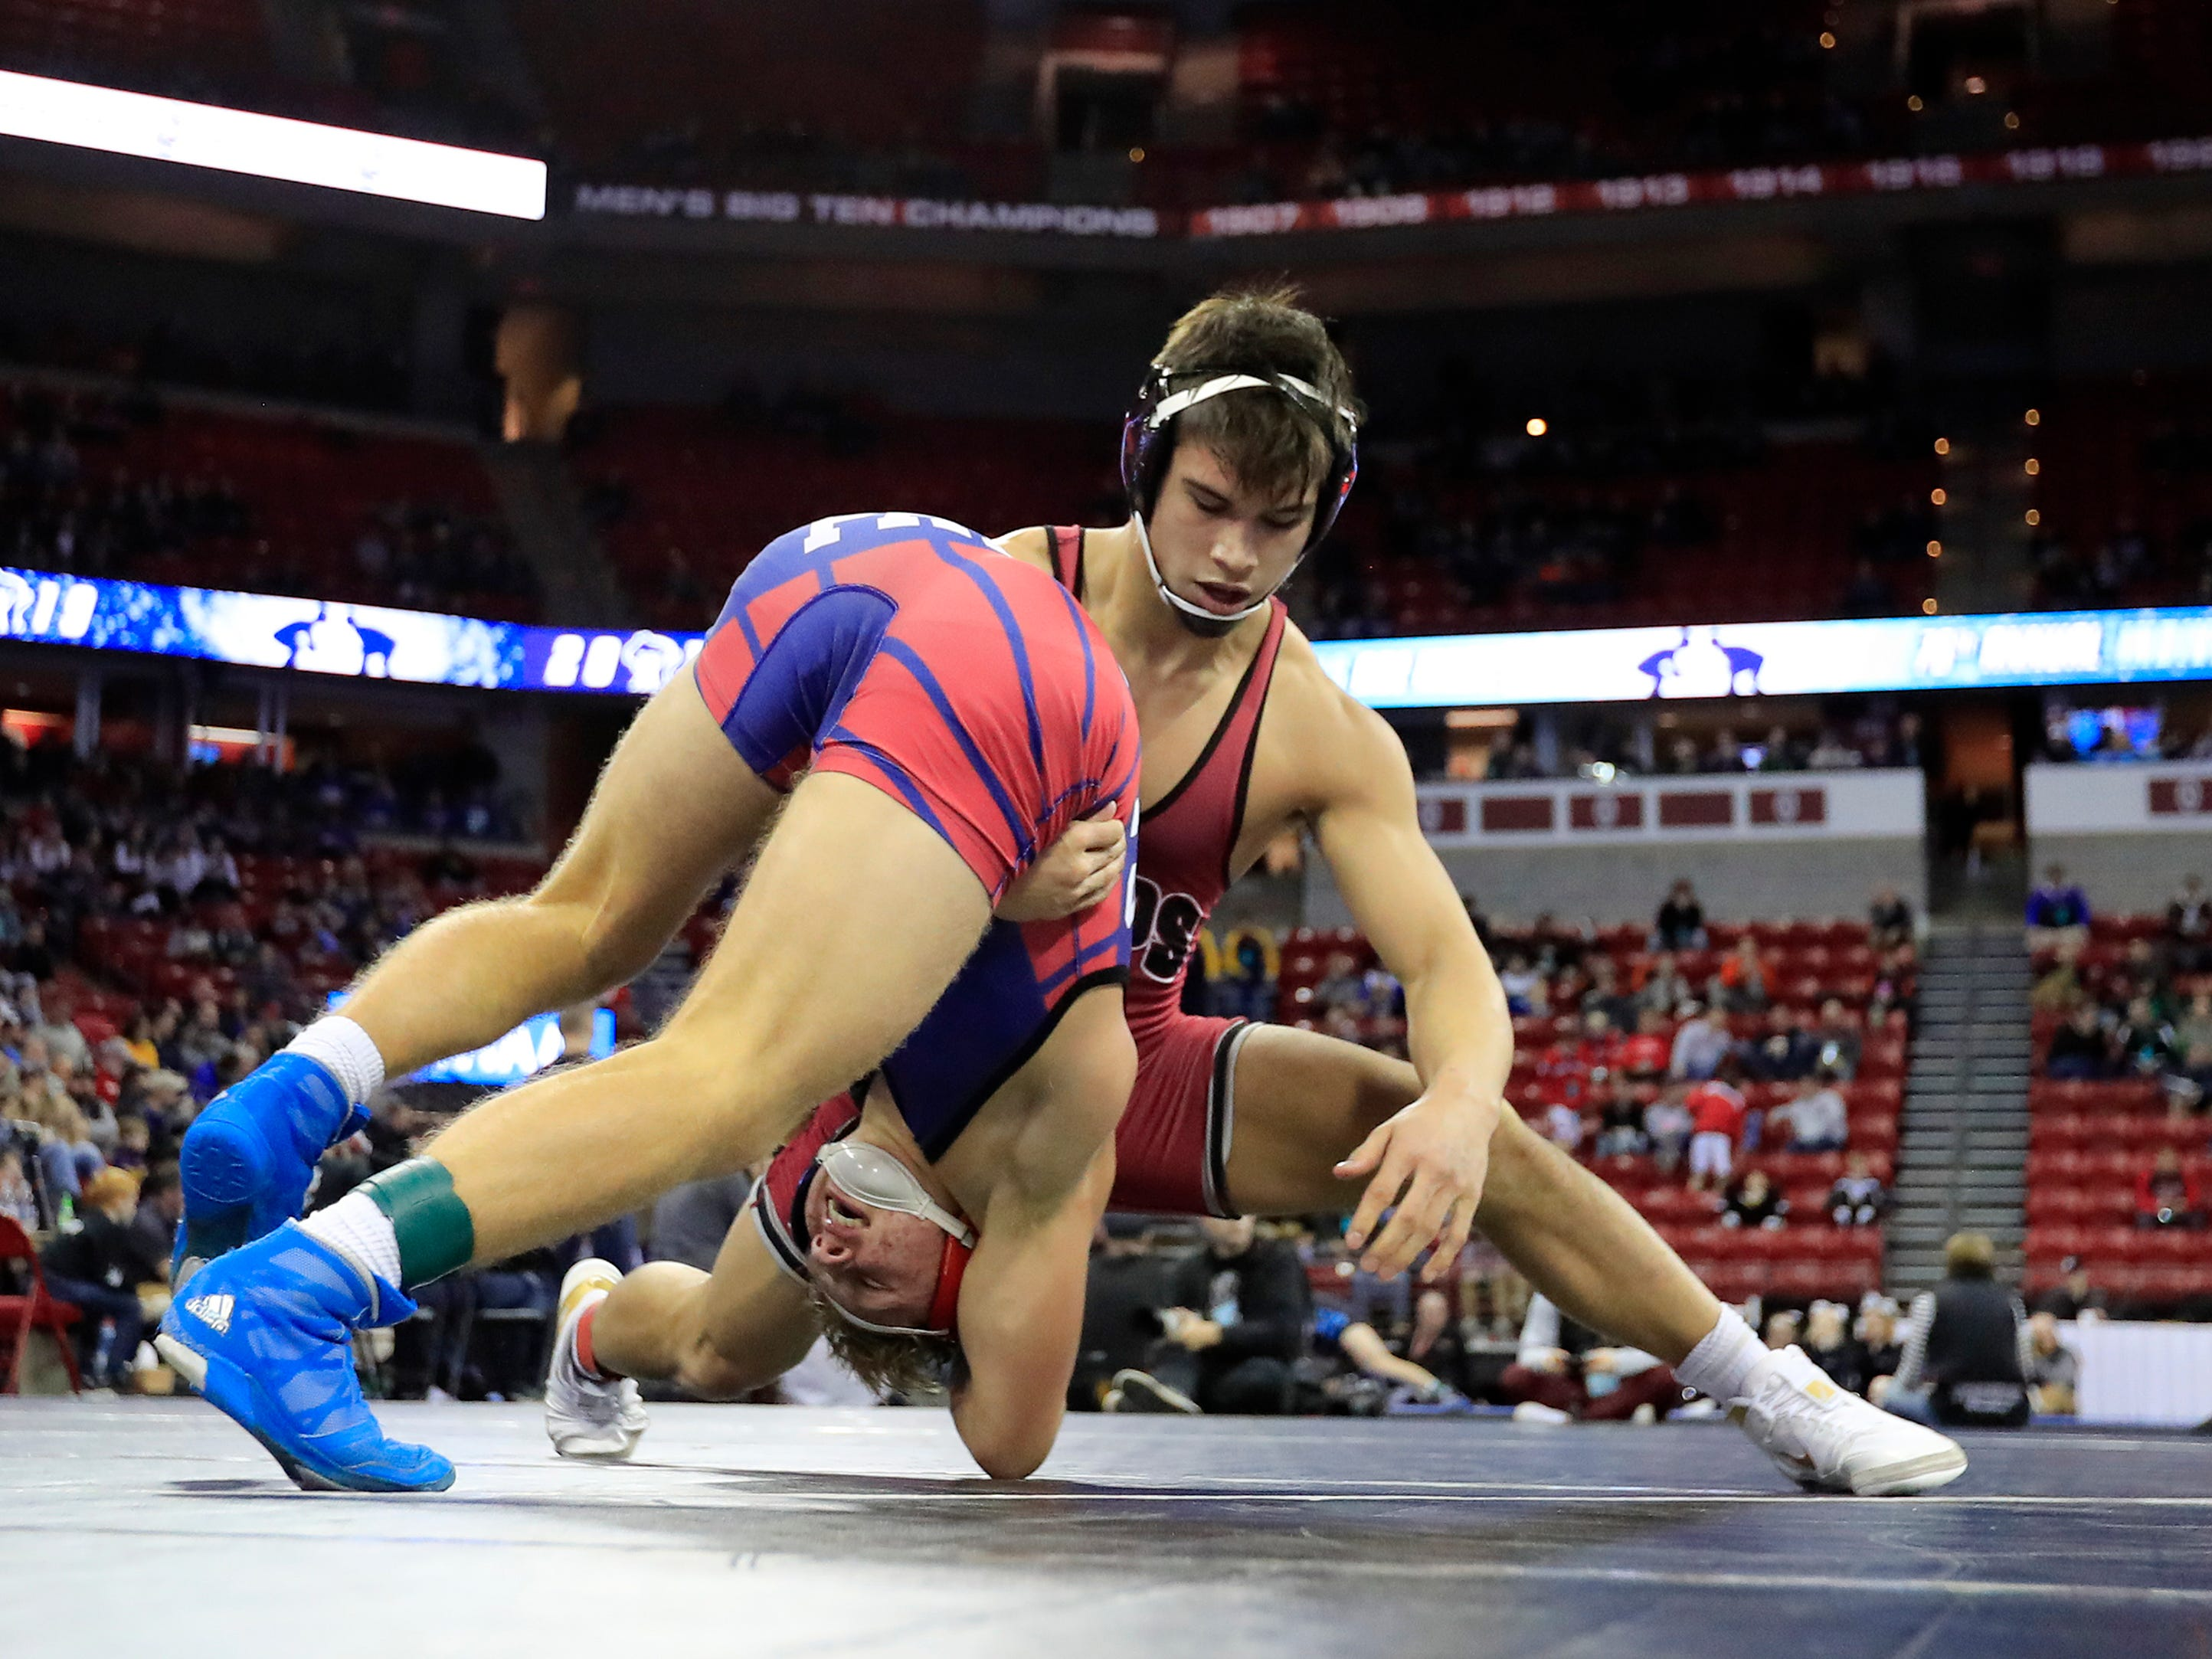 Appleton East's Tyler Locke wrestles Middleton's Kevin Meicher in a Division 1 152-pound quarterfinal match at the WIAA state individual wrestling tournament at the Kohl Center on Thursday, February 21, 2019 in Madison, Wis.